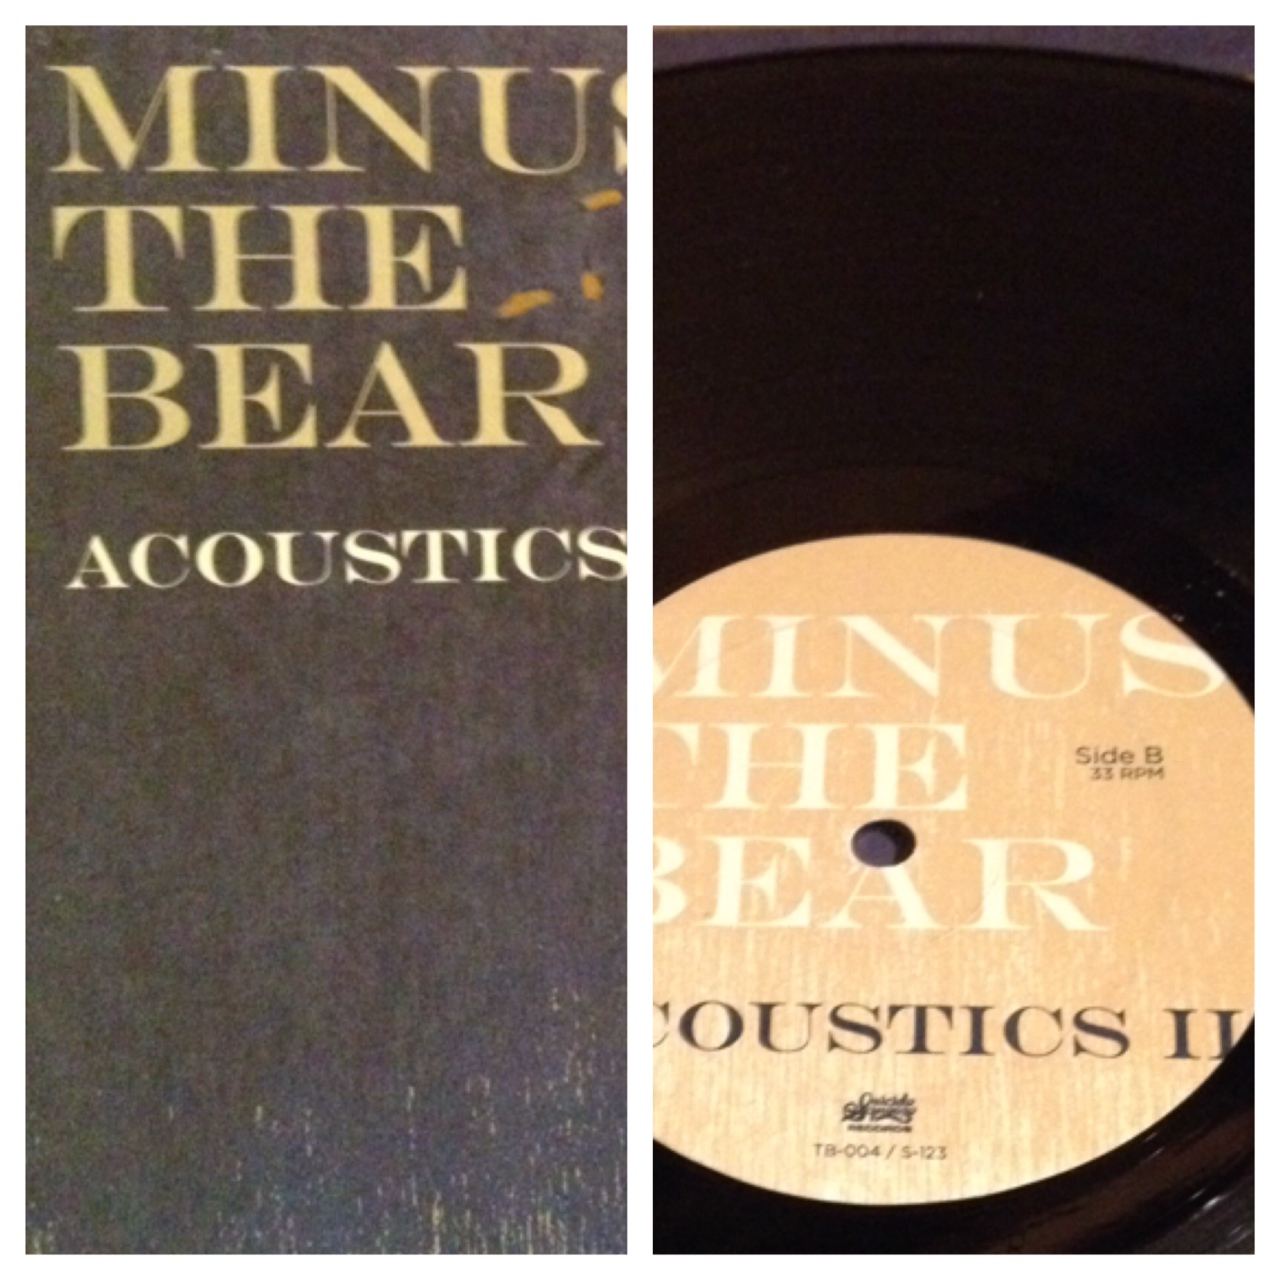 Minus The Bear - Acoustic II on vinyl